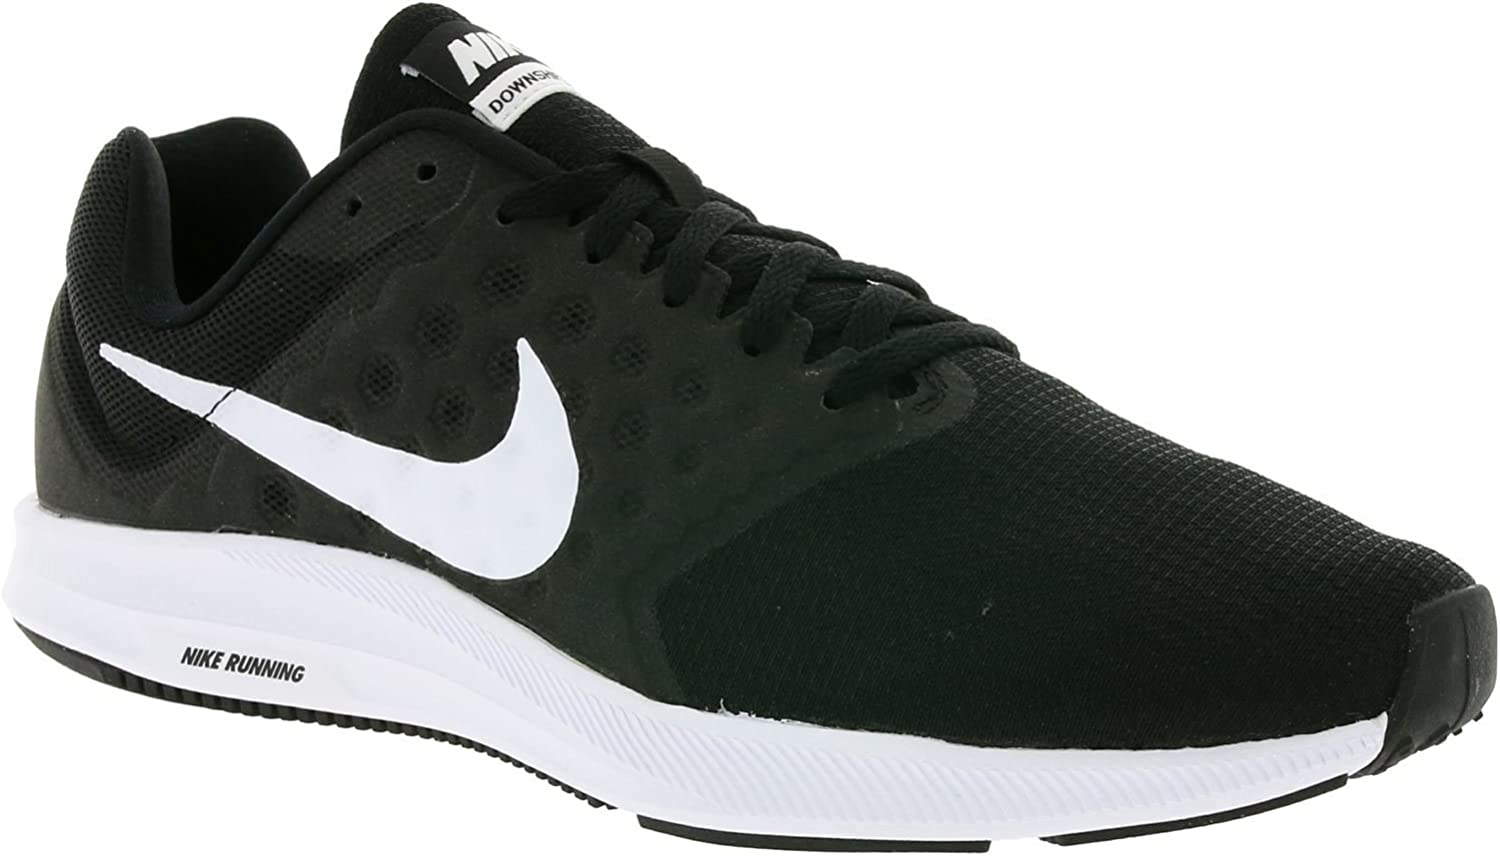 Nike Men s Downshifter 7 Running Shoe Black 12